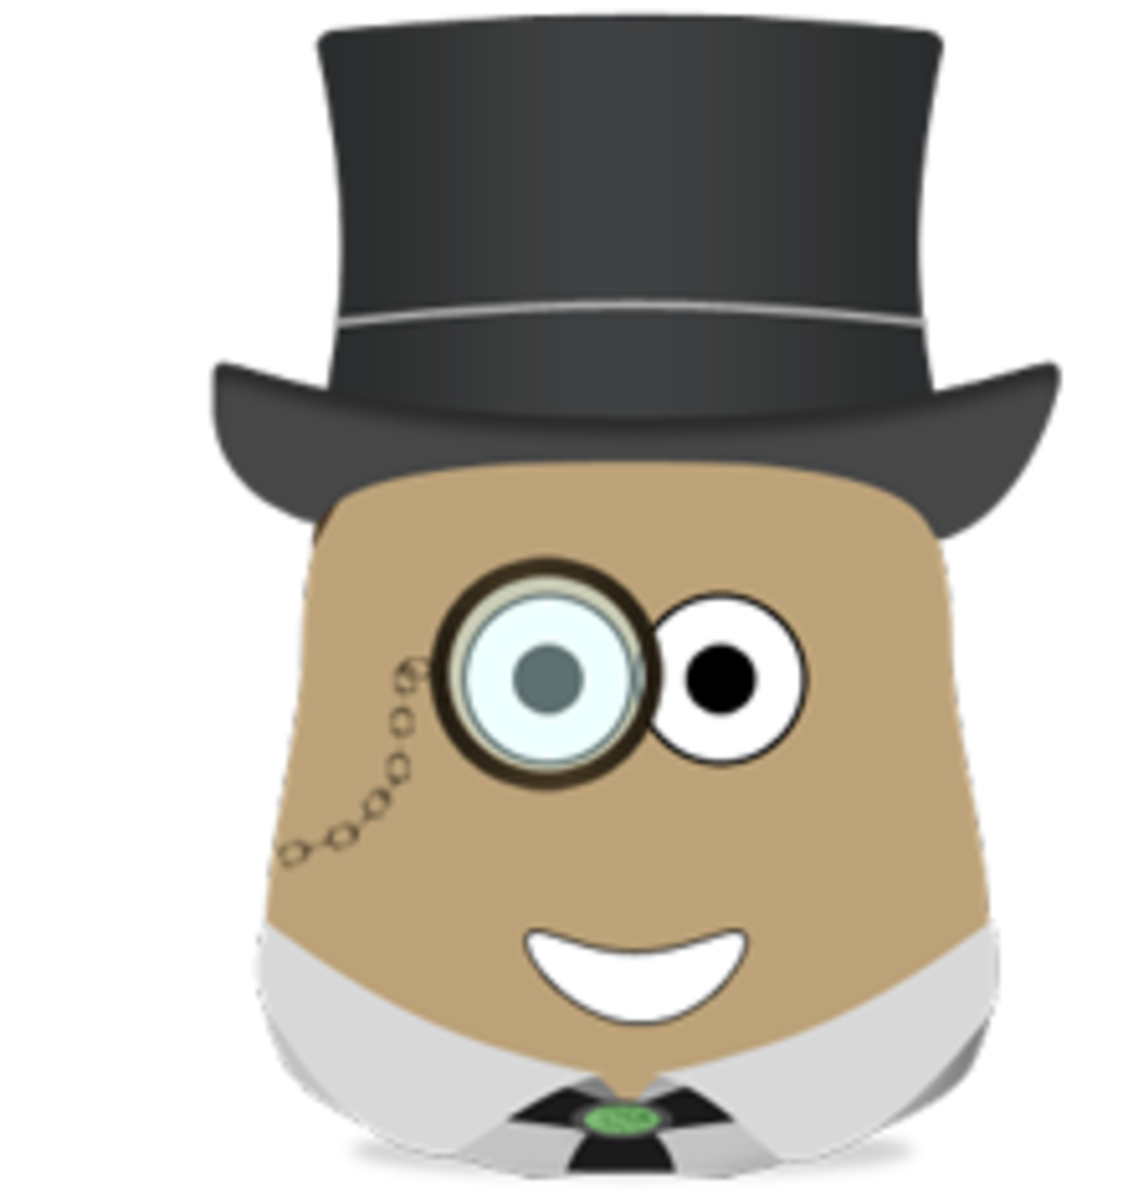 Look at this gentlemanly blob.